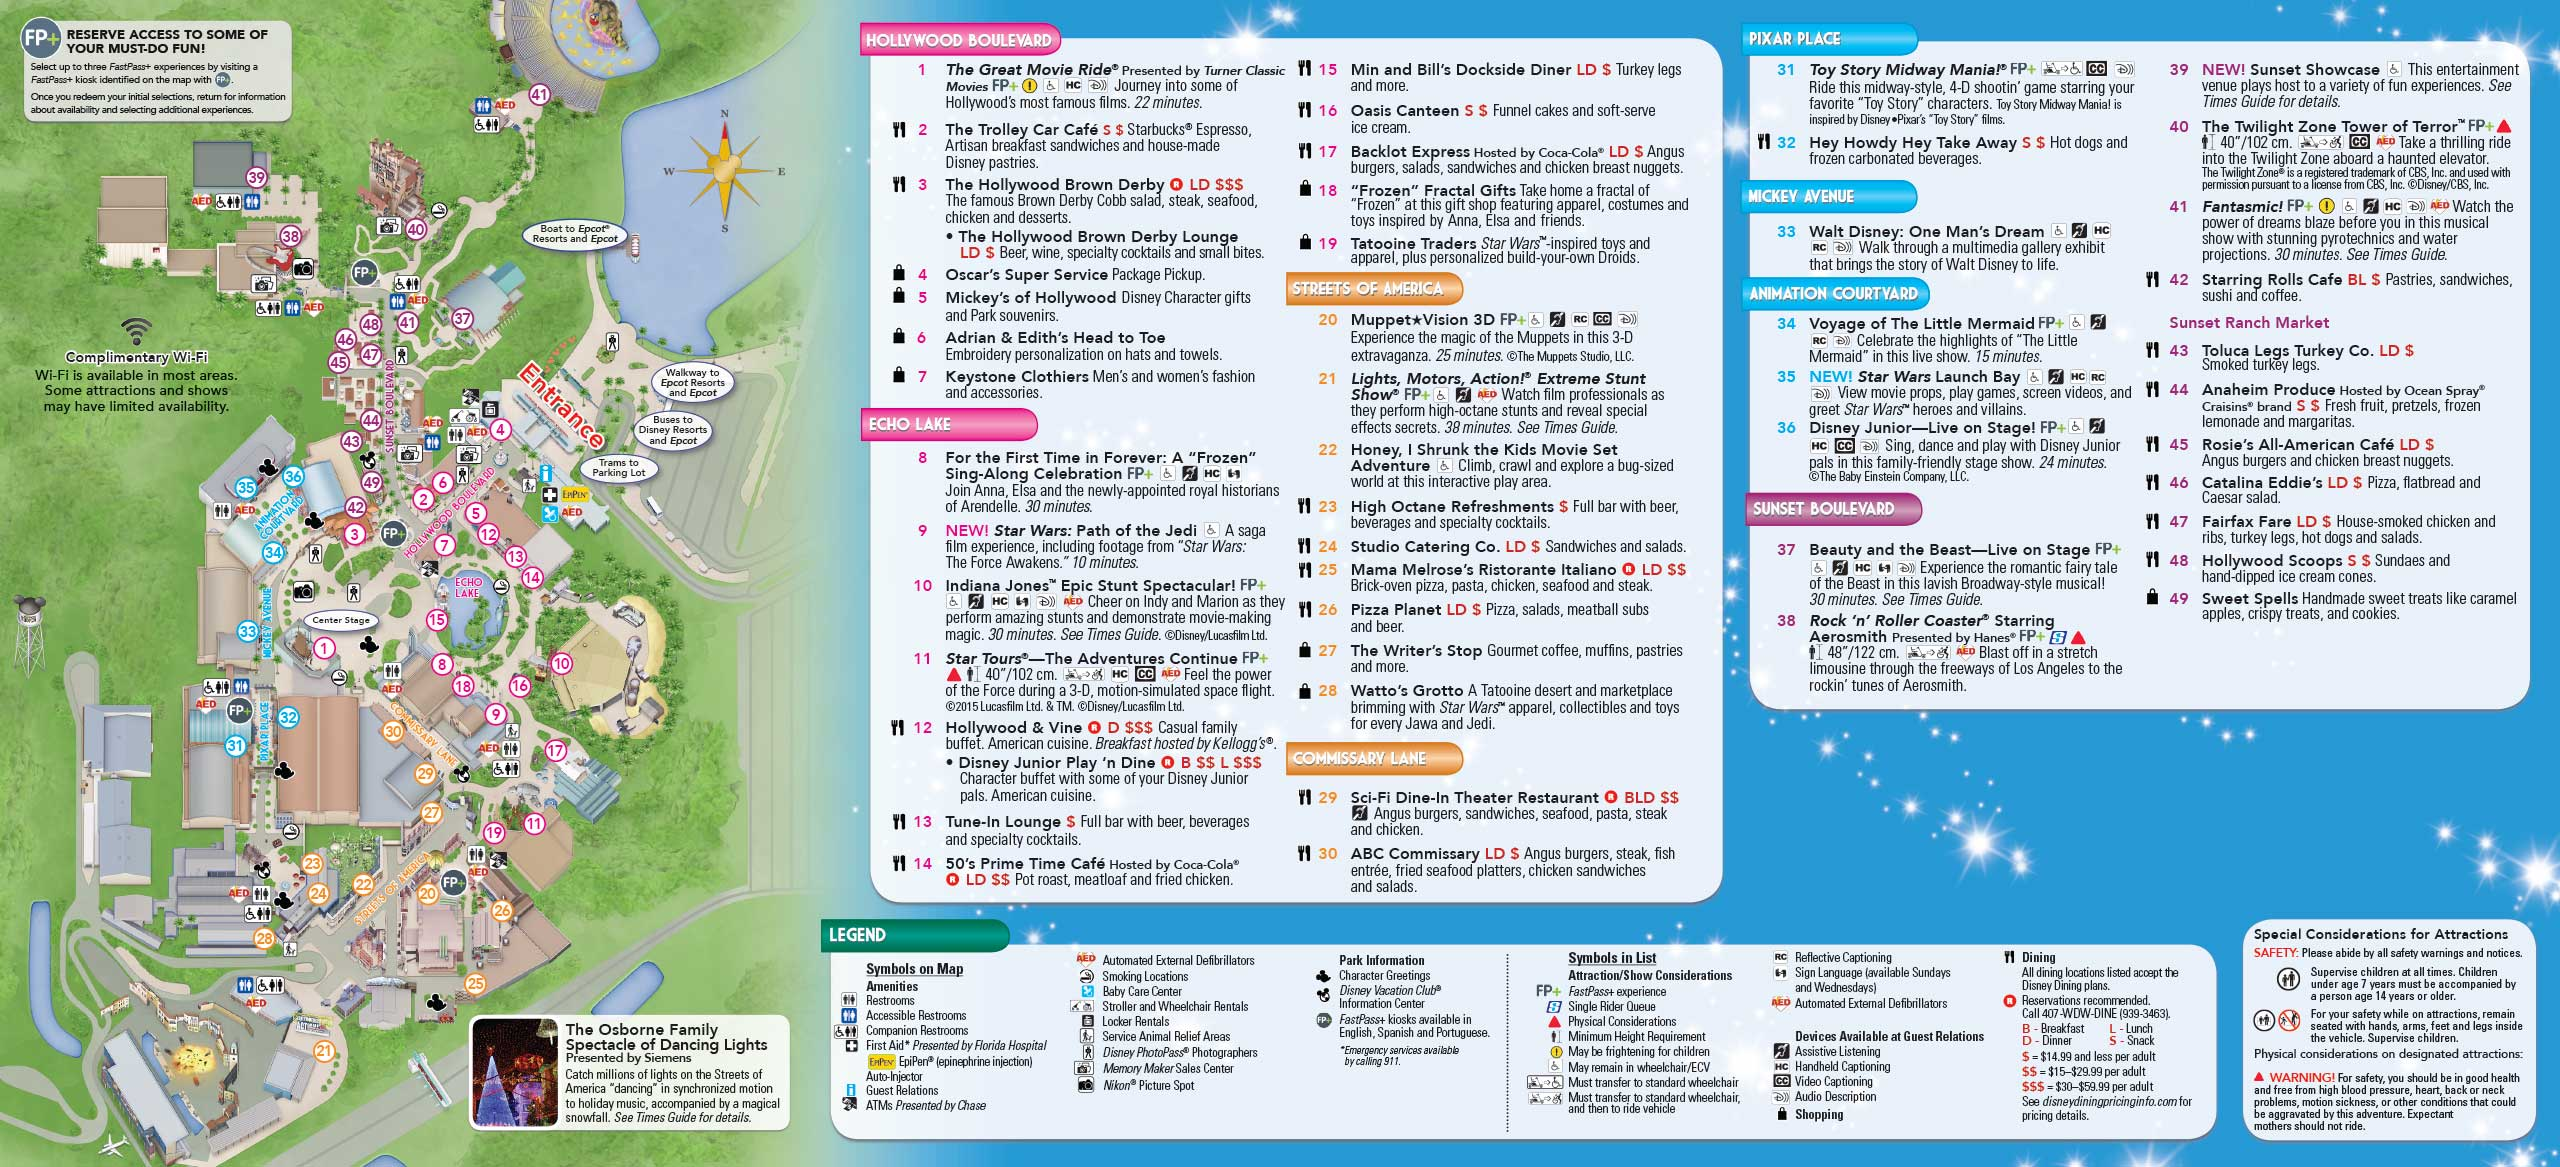 Disney's Hollywood Studios Guide Map December 2015 - Back